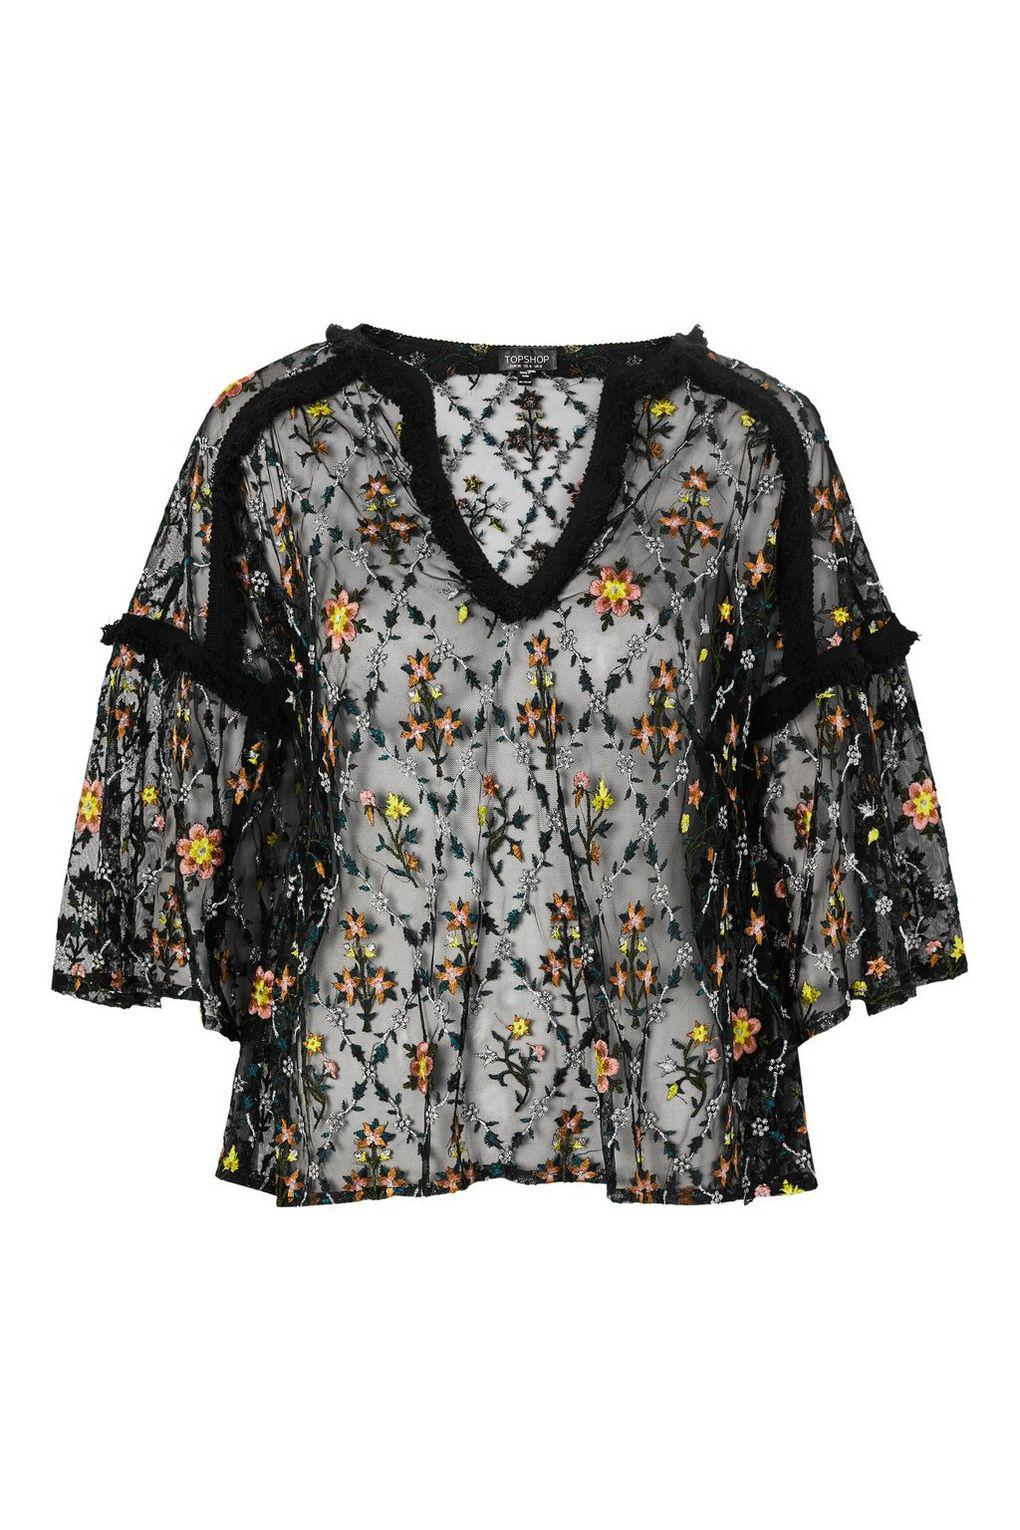 TOPSHOP Synthetic Metallic Floral Top in Black